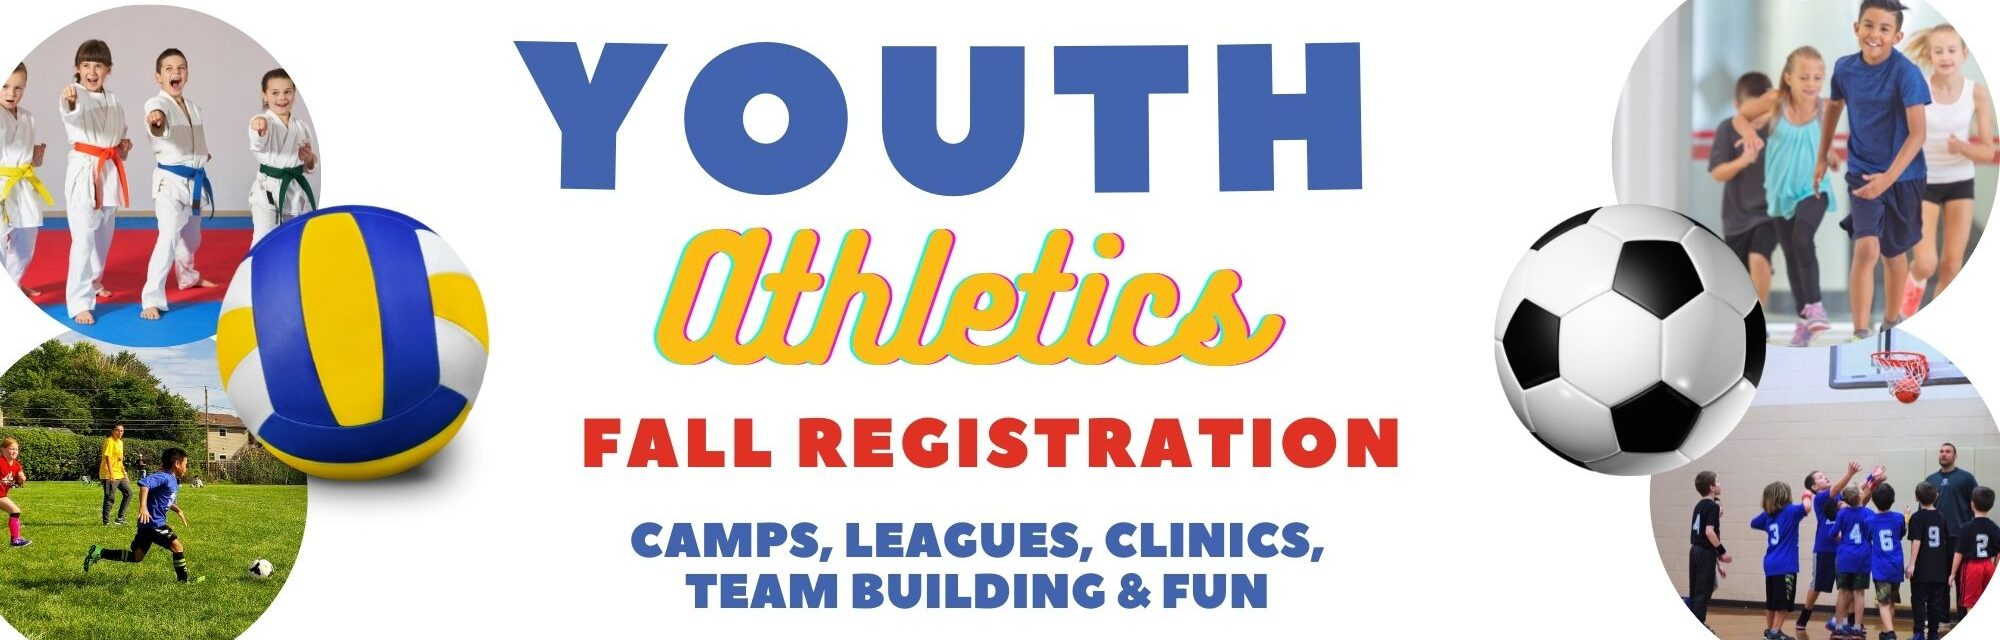 Various Pictures of Youth Fall Athletics